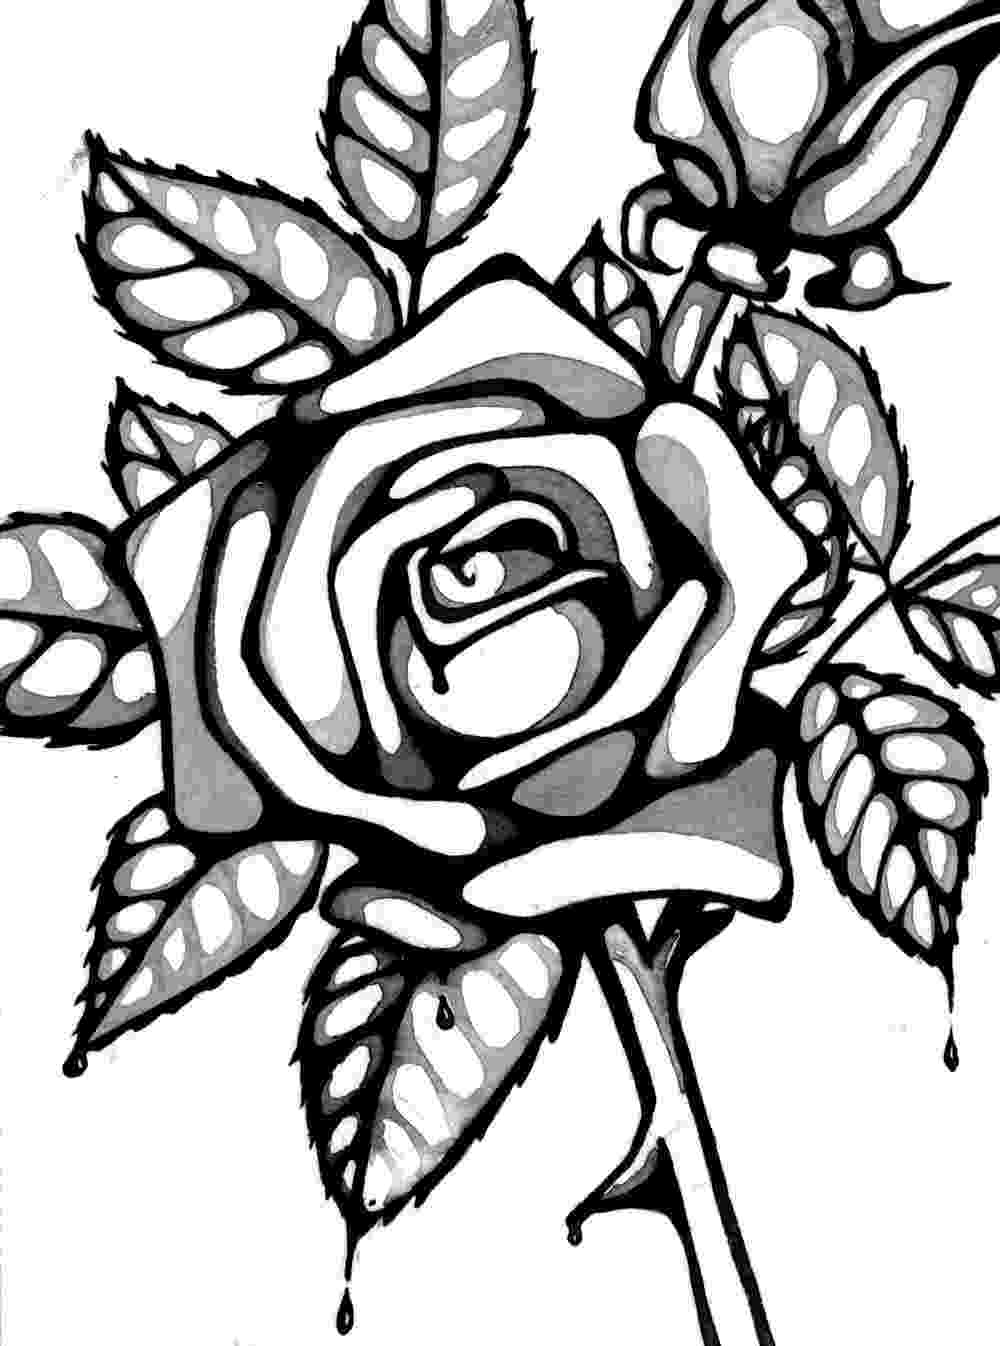 rose pictures to trace how to draw a skull and roses tattoo step by step rose trace pictures to